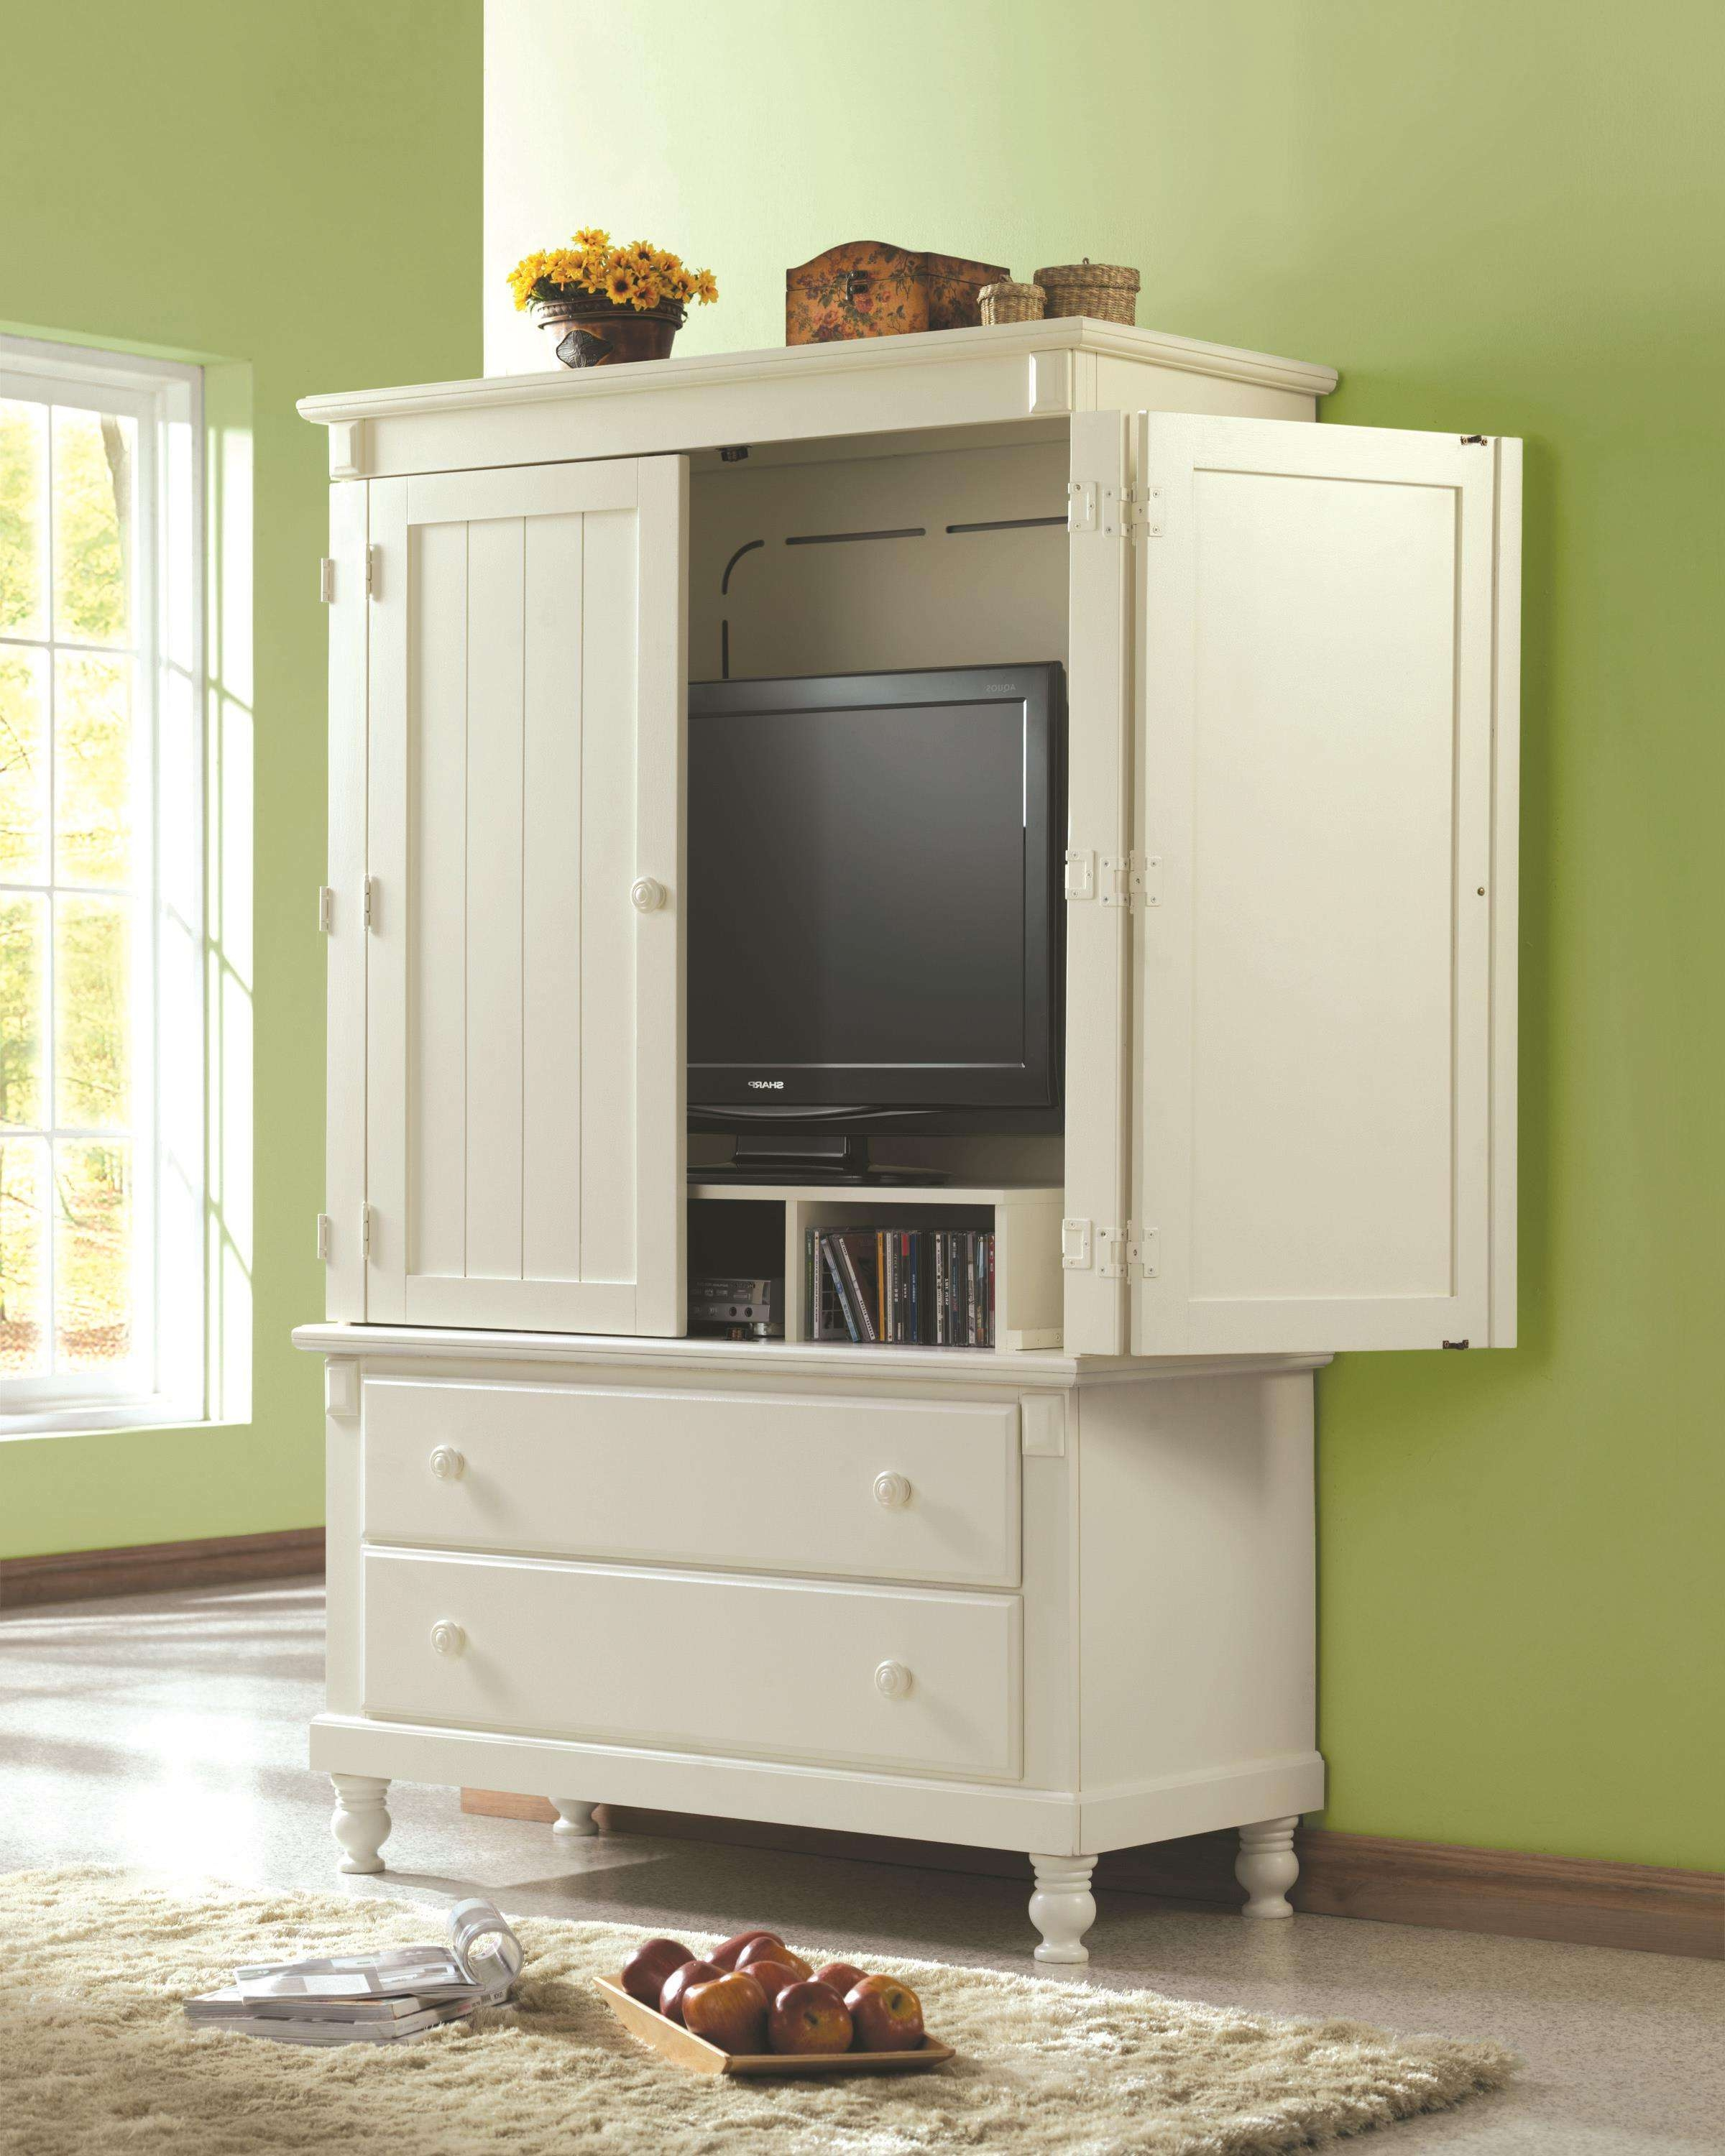 White Wooden Cabinet With Double White Wooden Door Having White Pertaining To Enclosed Tv Cabinets For Flat Screens With Doors (View 20 of 20)